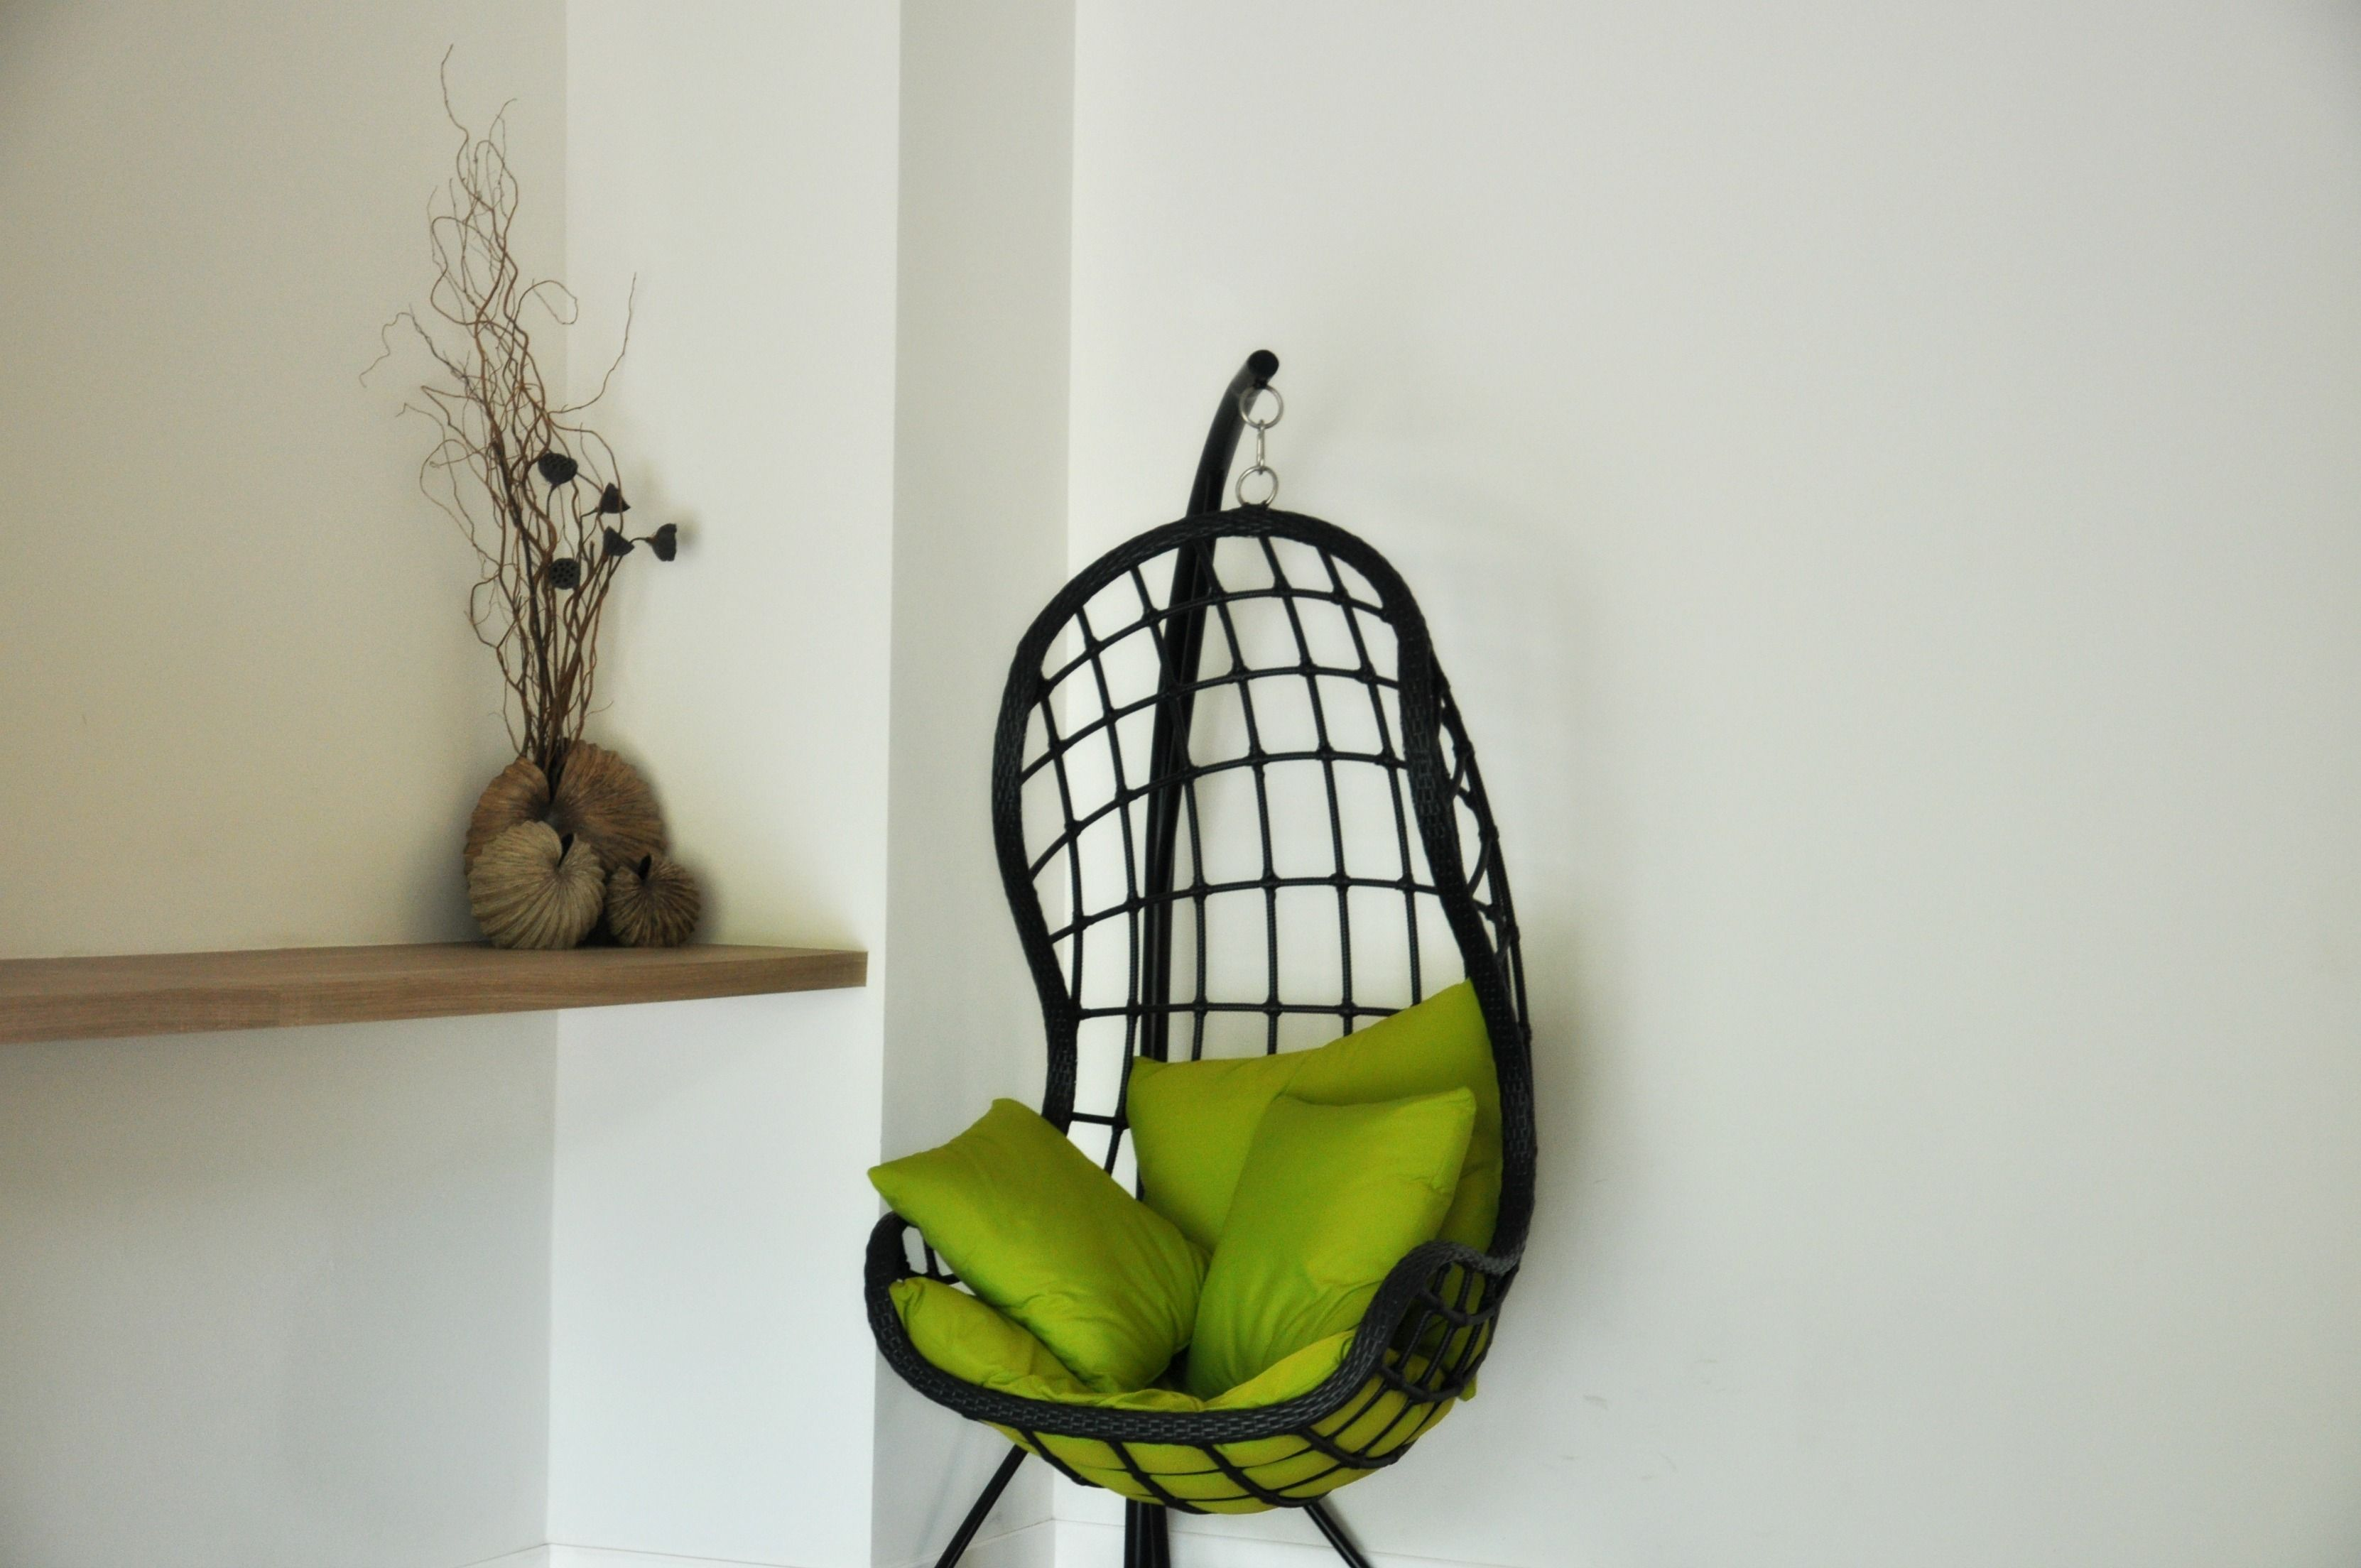 ikea egg ideas awesome basket bedroom for cocoon pier furniture home breathtaking hanging chair spinning swinging swing indoor